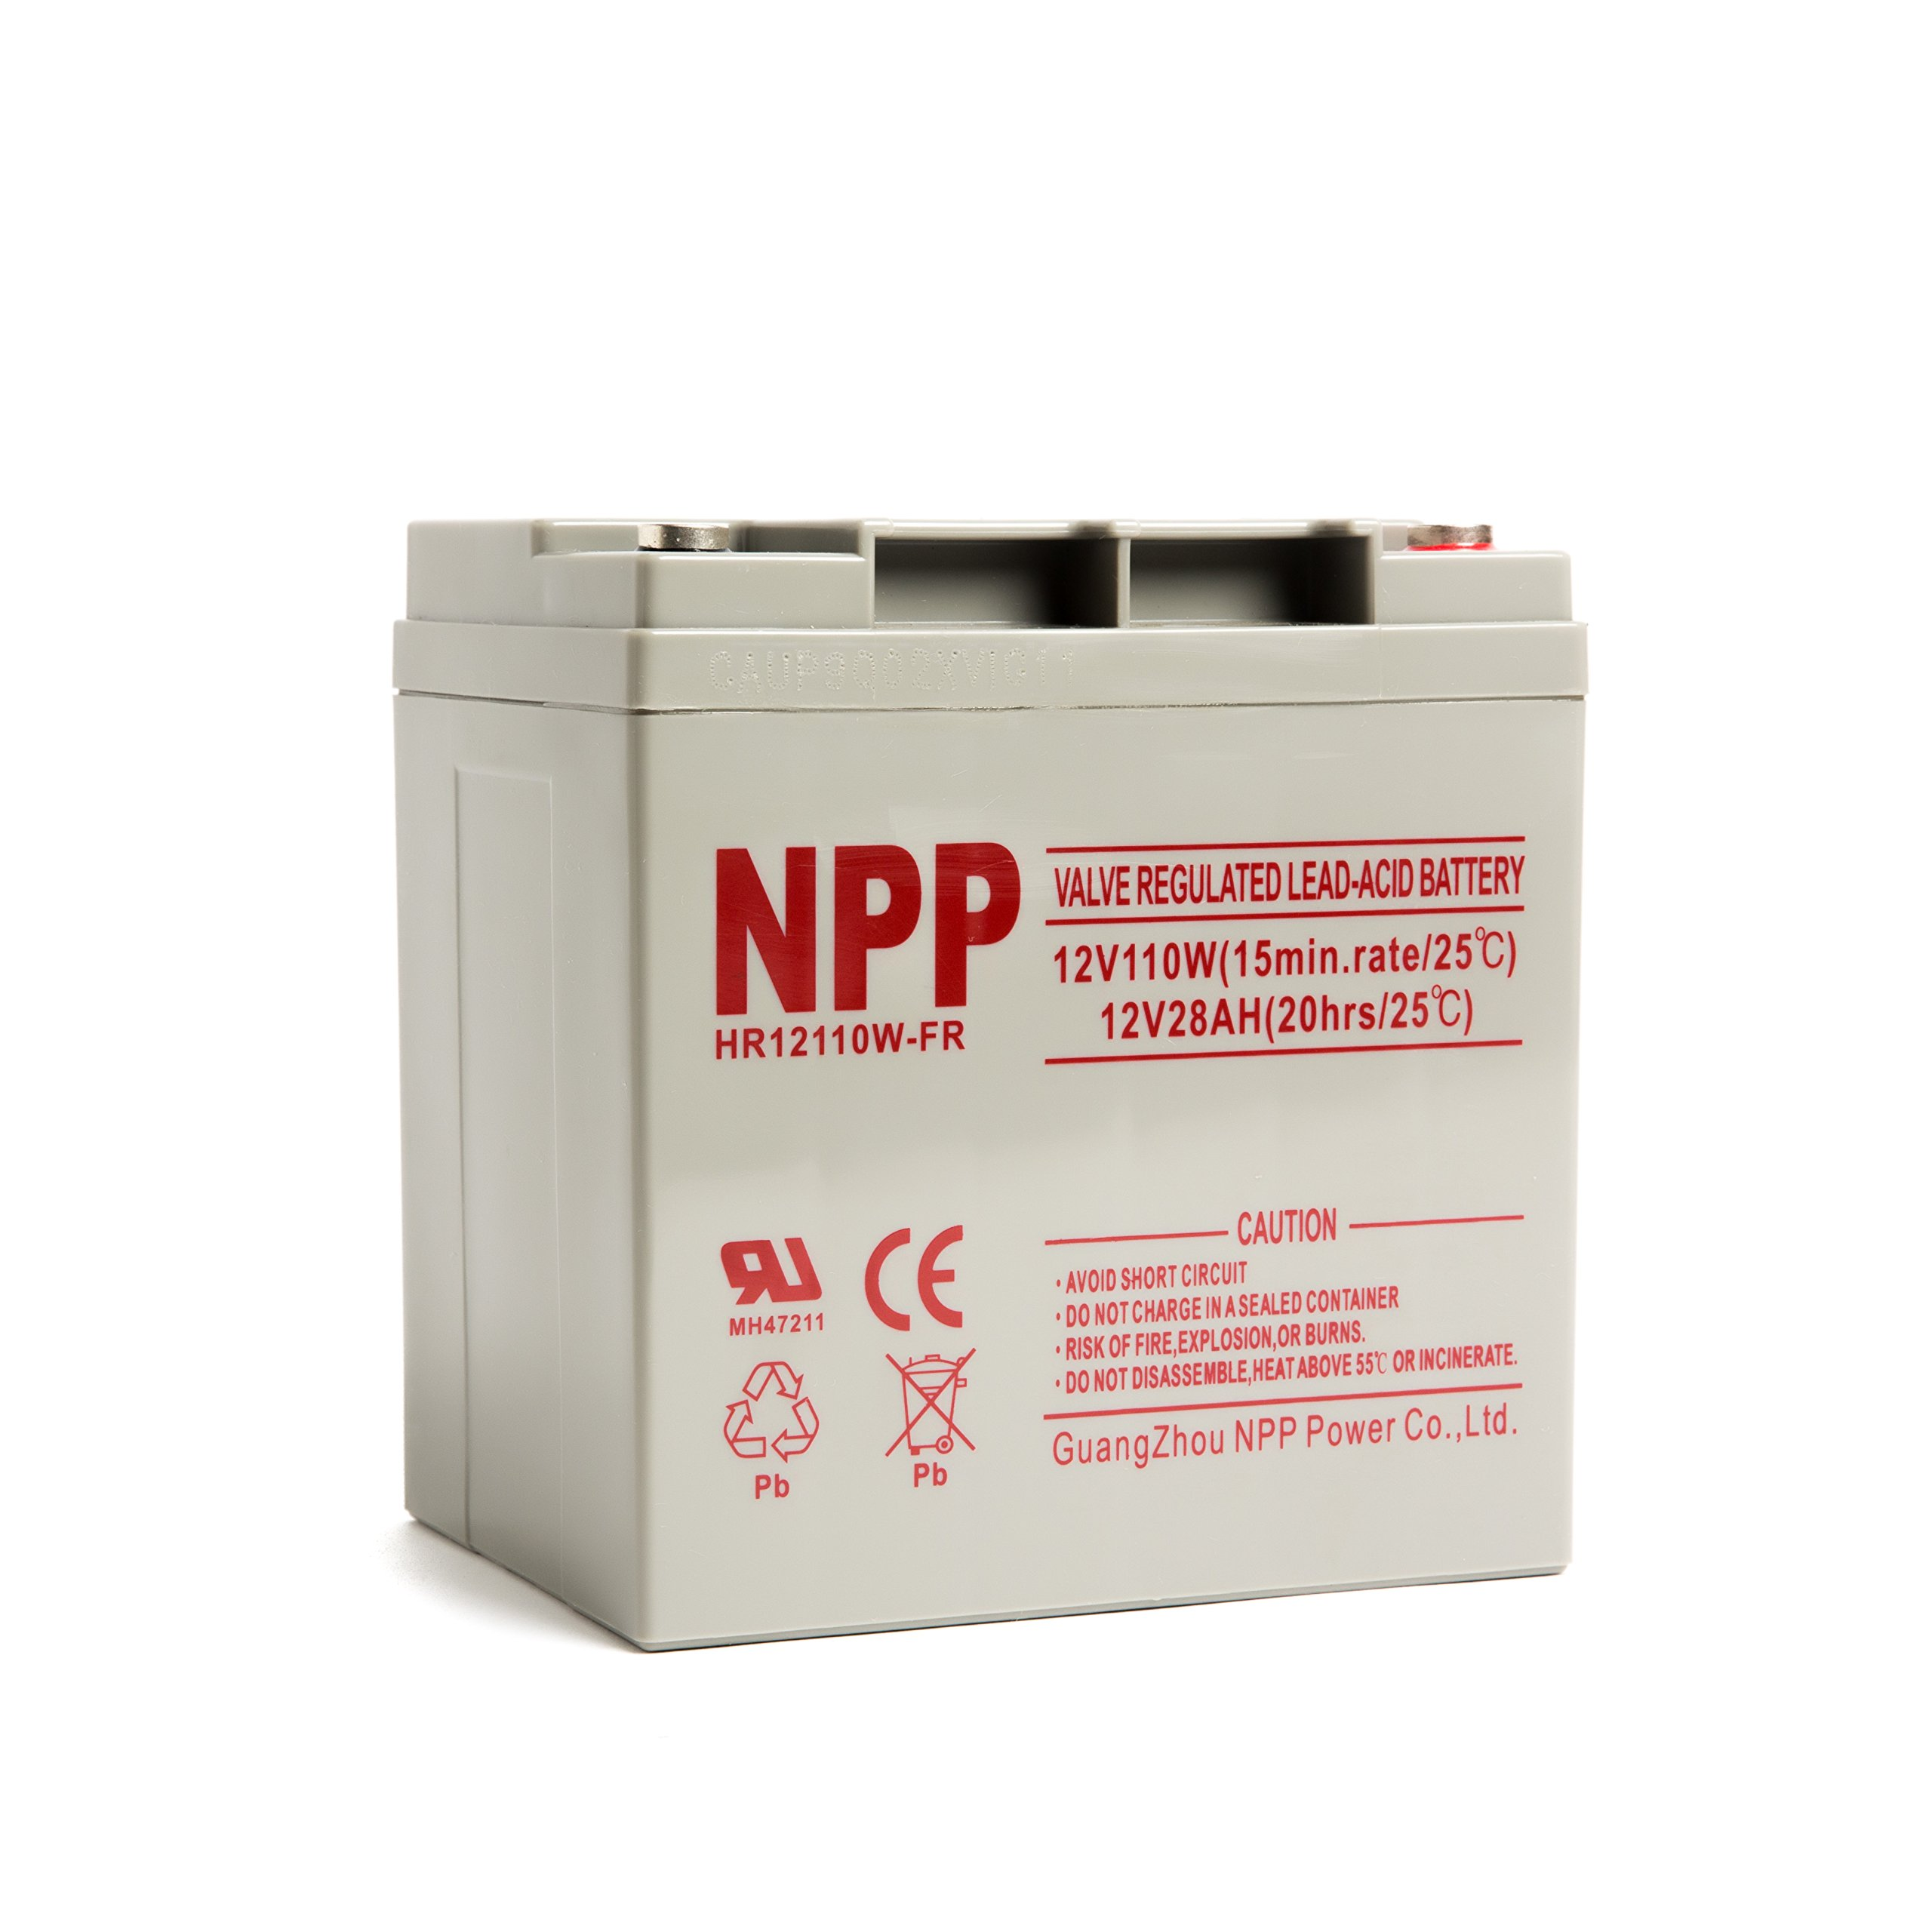 NPP NP12110W FR 12V 28Ah Rechargeable AGM Lead Acid Battery with Button Style Terminals by NPP